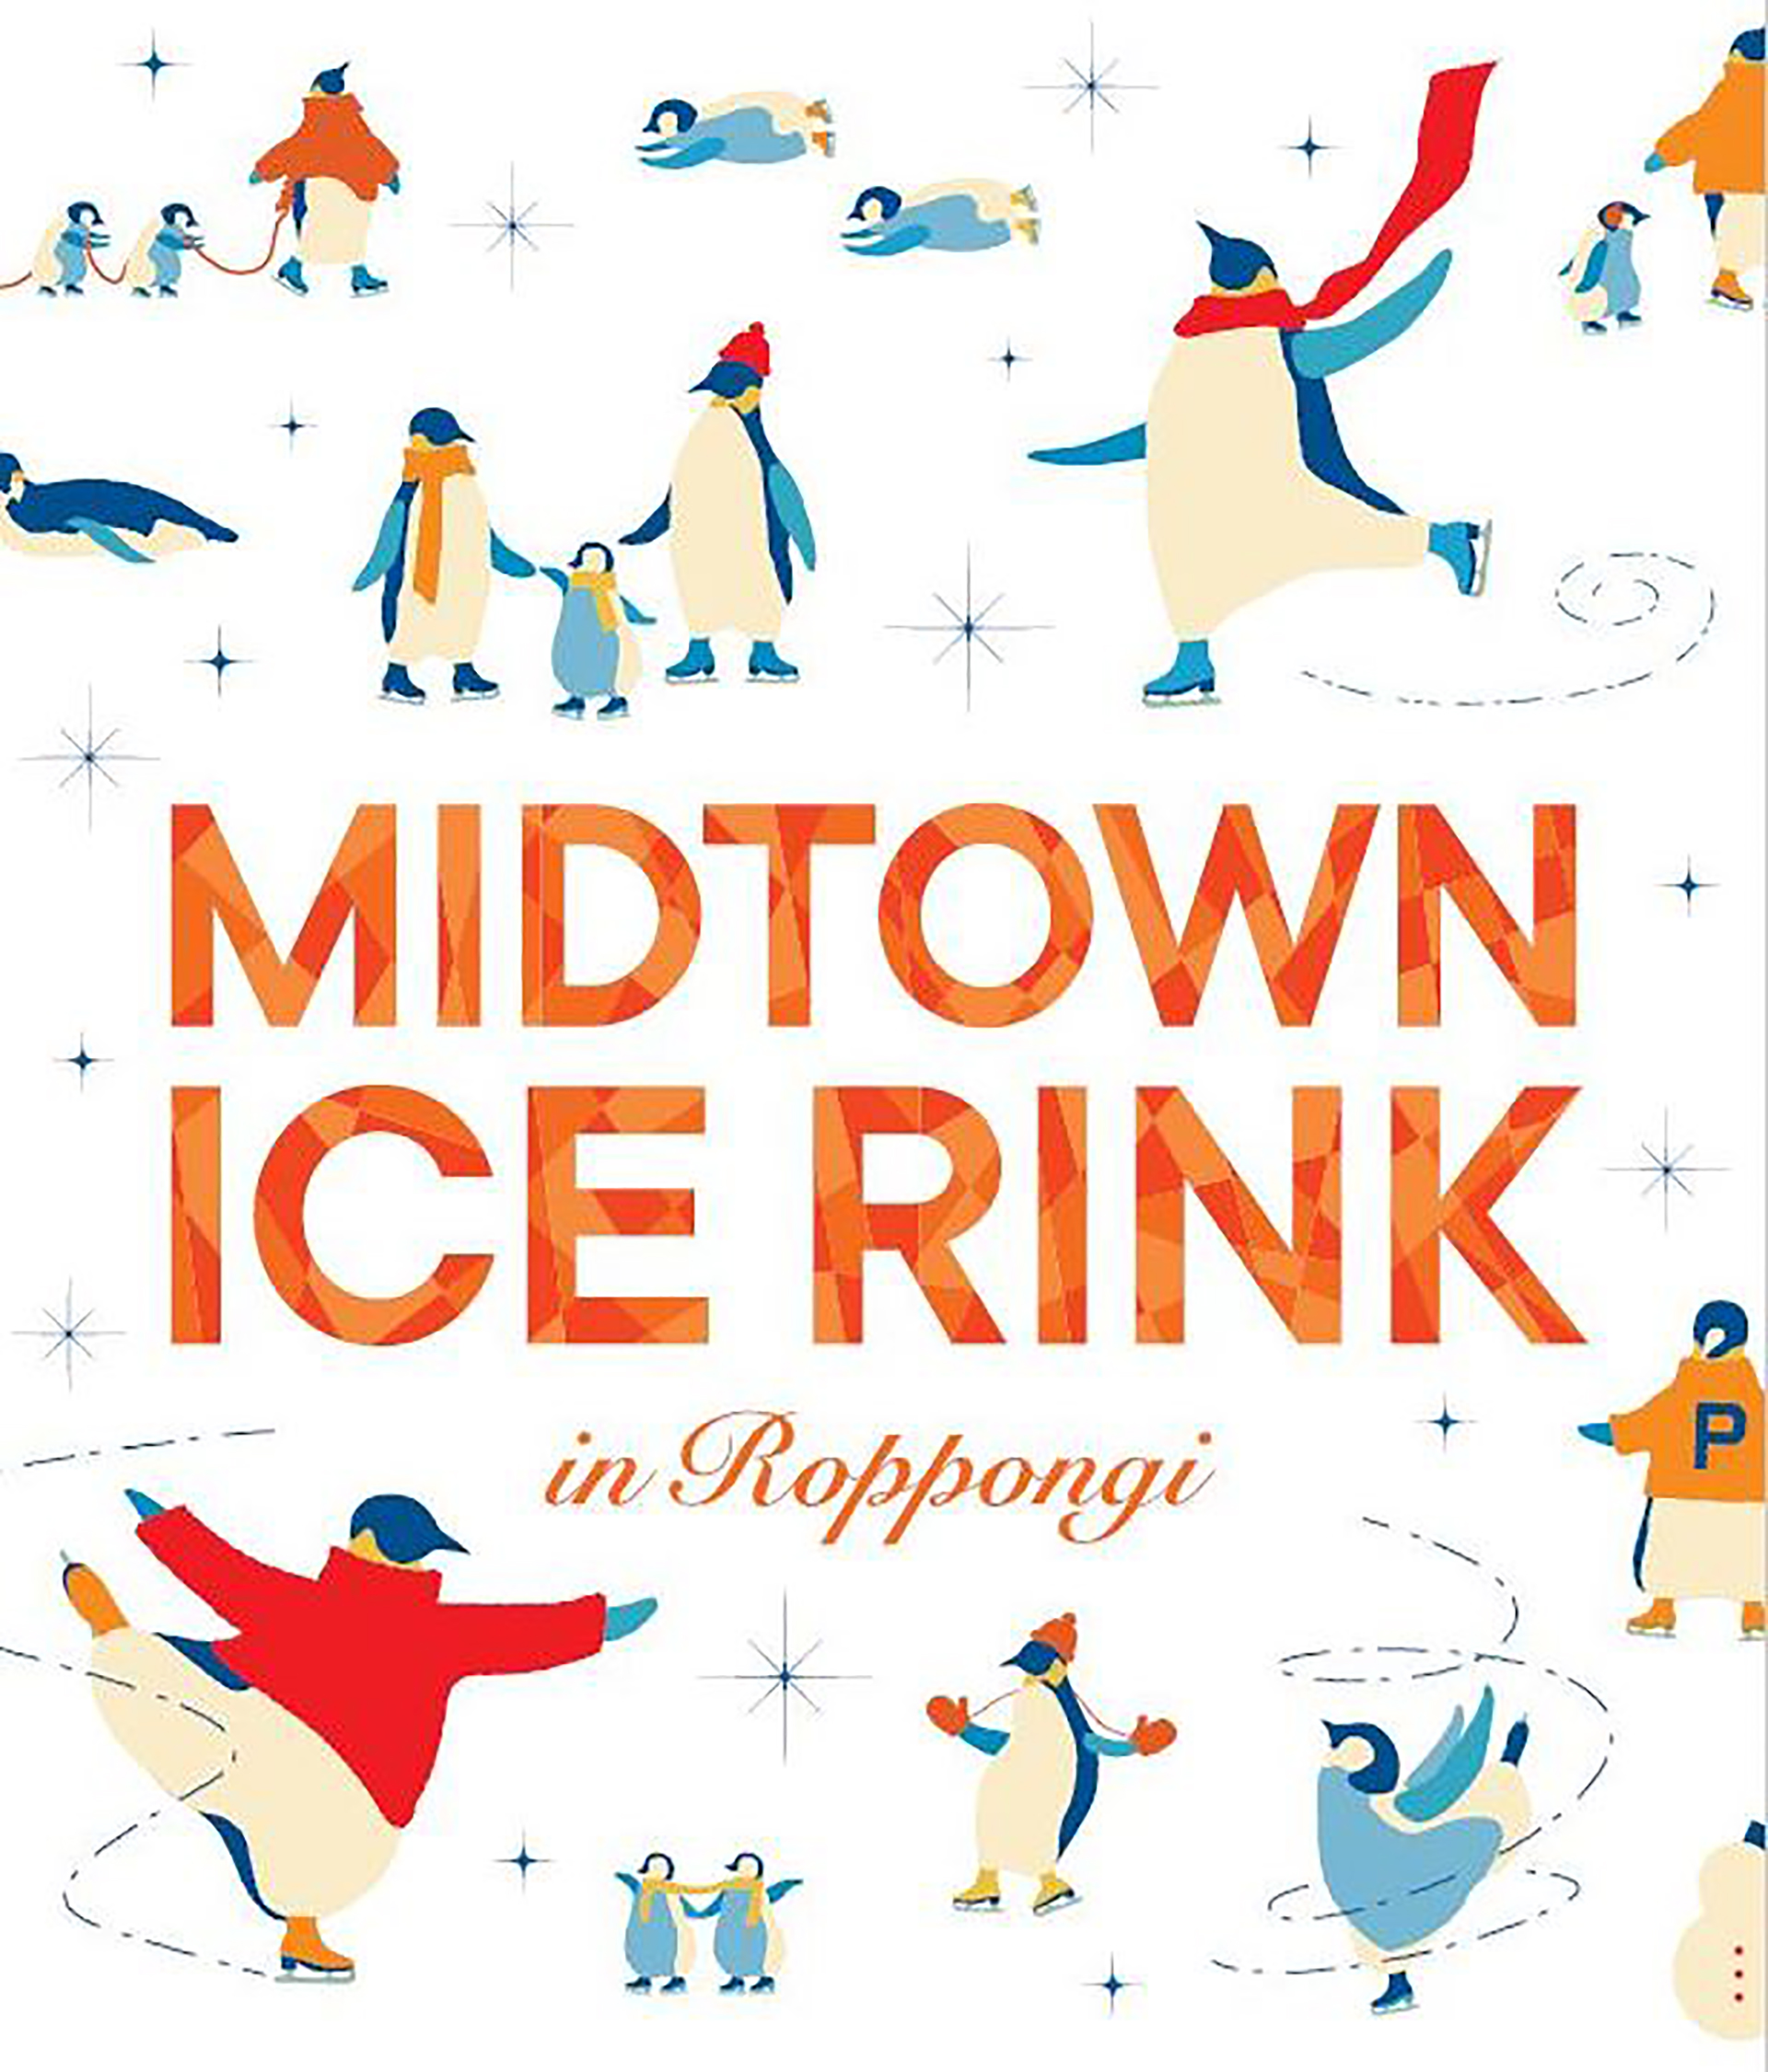 MIDTOWN ICE RINK in Roppongiバナー